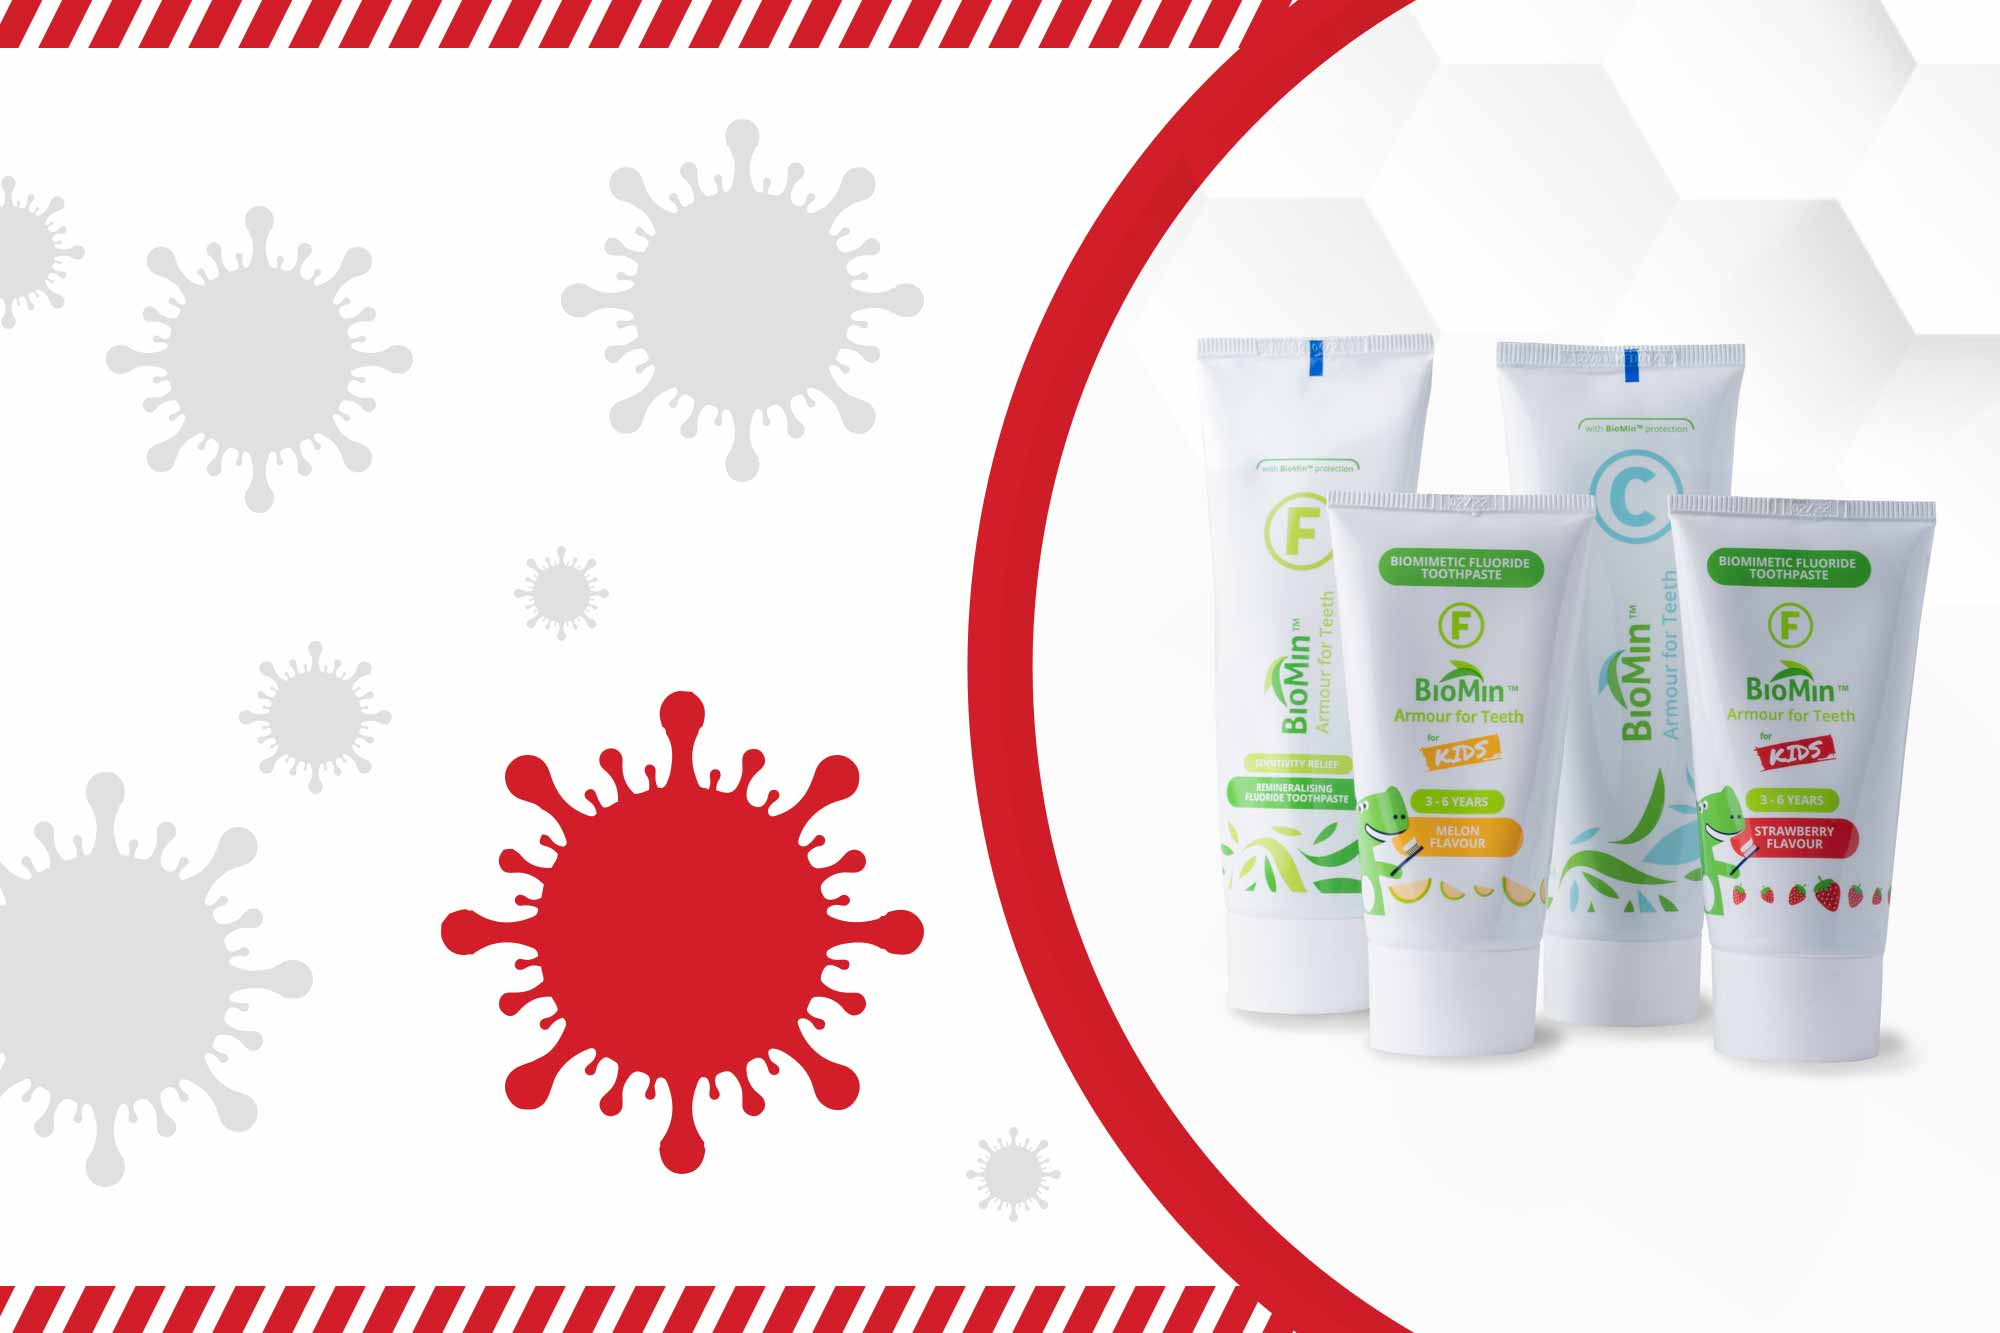 Biomin toothpaste helps to fight COVID-19